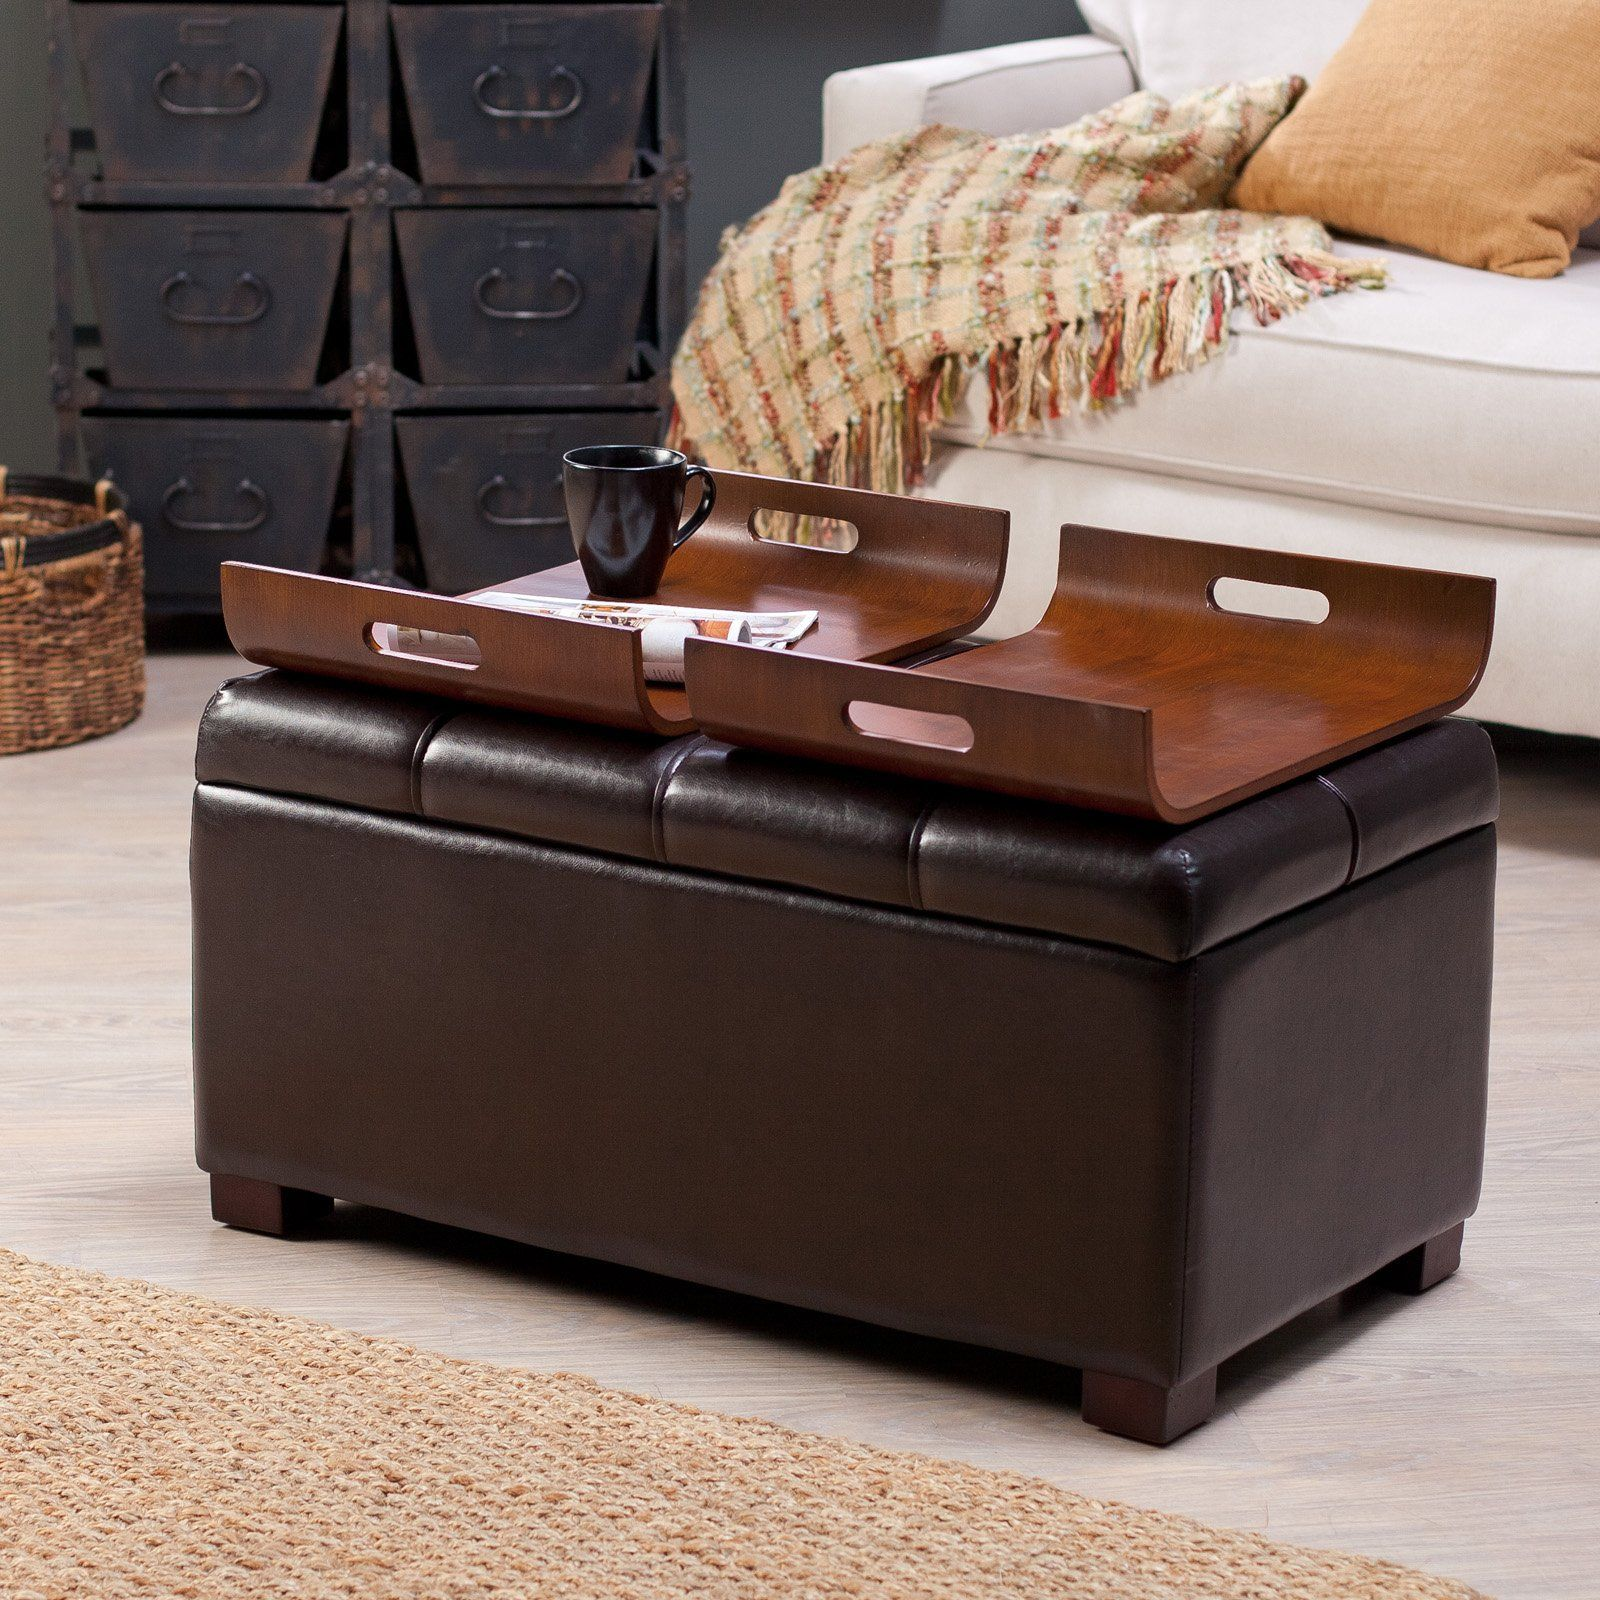 Livingston Storage Ottoman With Tray Tables Brown Add Serious Style And Storage To Your Home